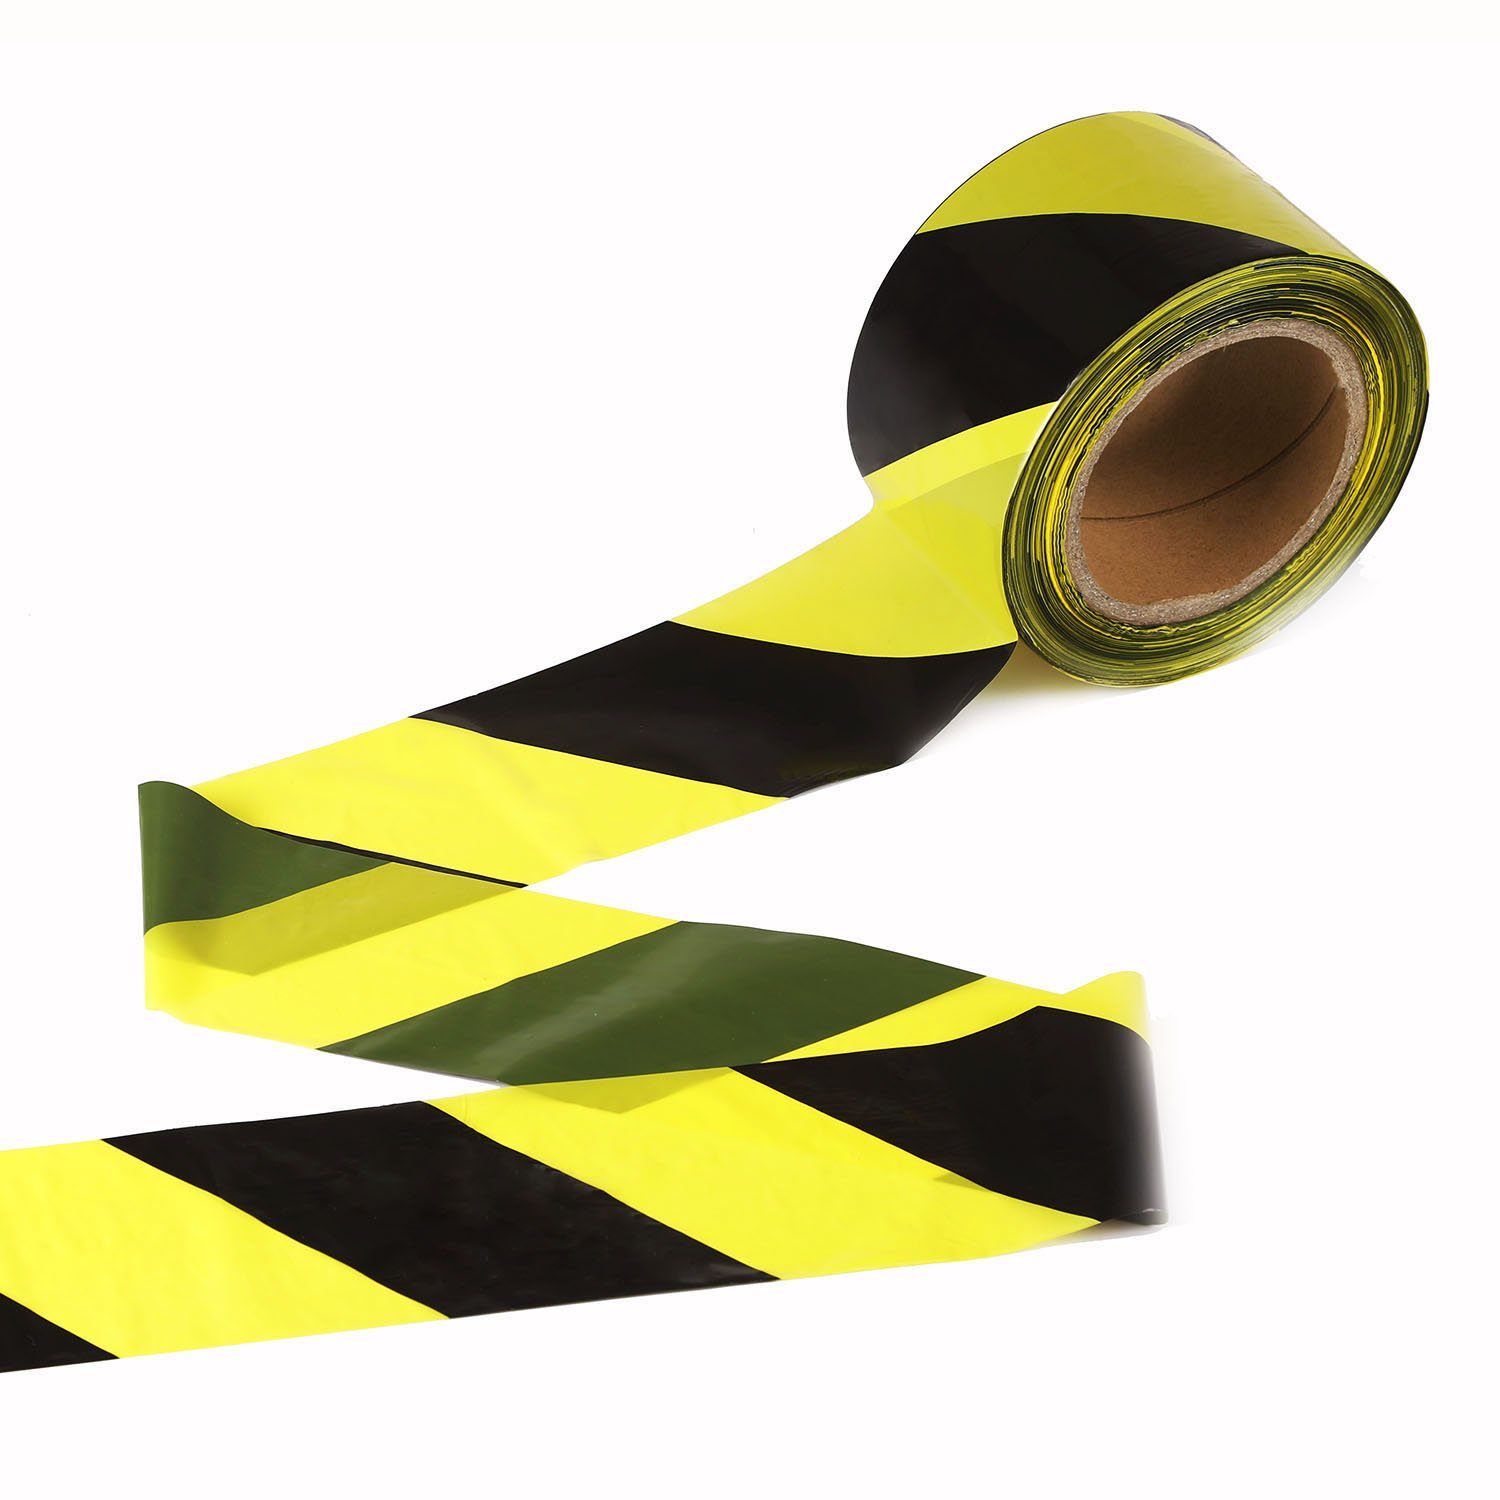 TopSoon Stripe Barricade Caution Tape Warning Tape Yellow Black 2.8-Inch by 660-Feet Non-Adhesive